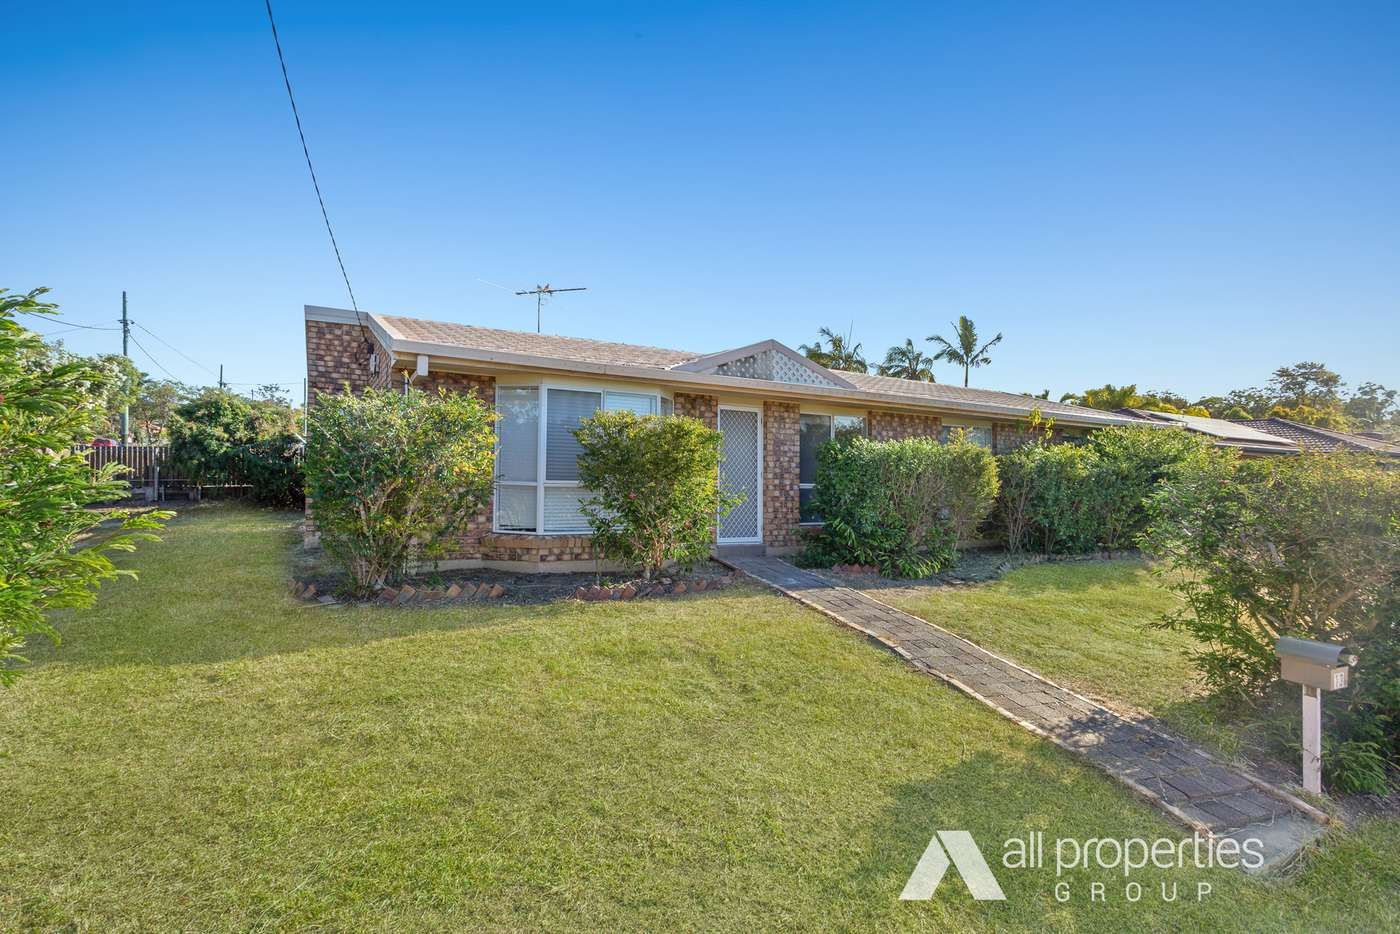 Main view of Homely house listing, 13 Burrinjuck Street, Marsden QLD 4132